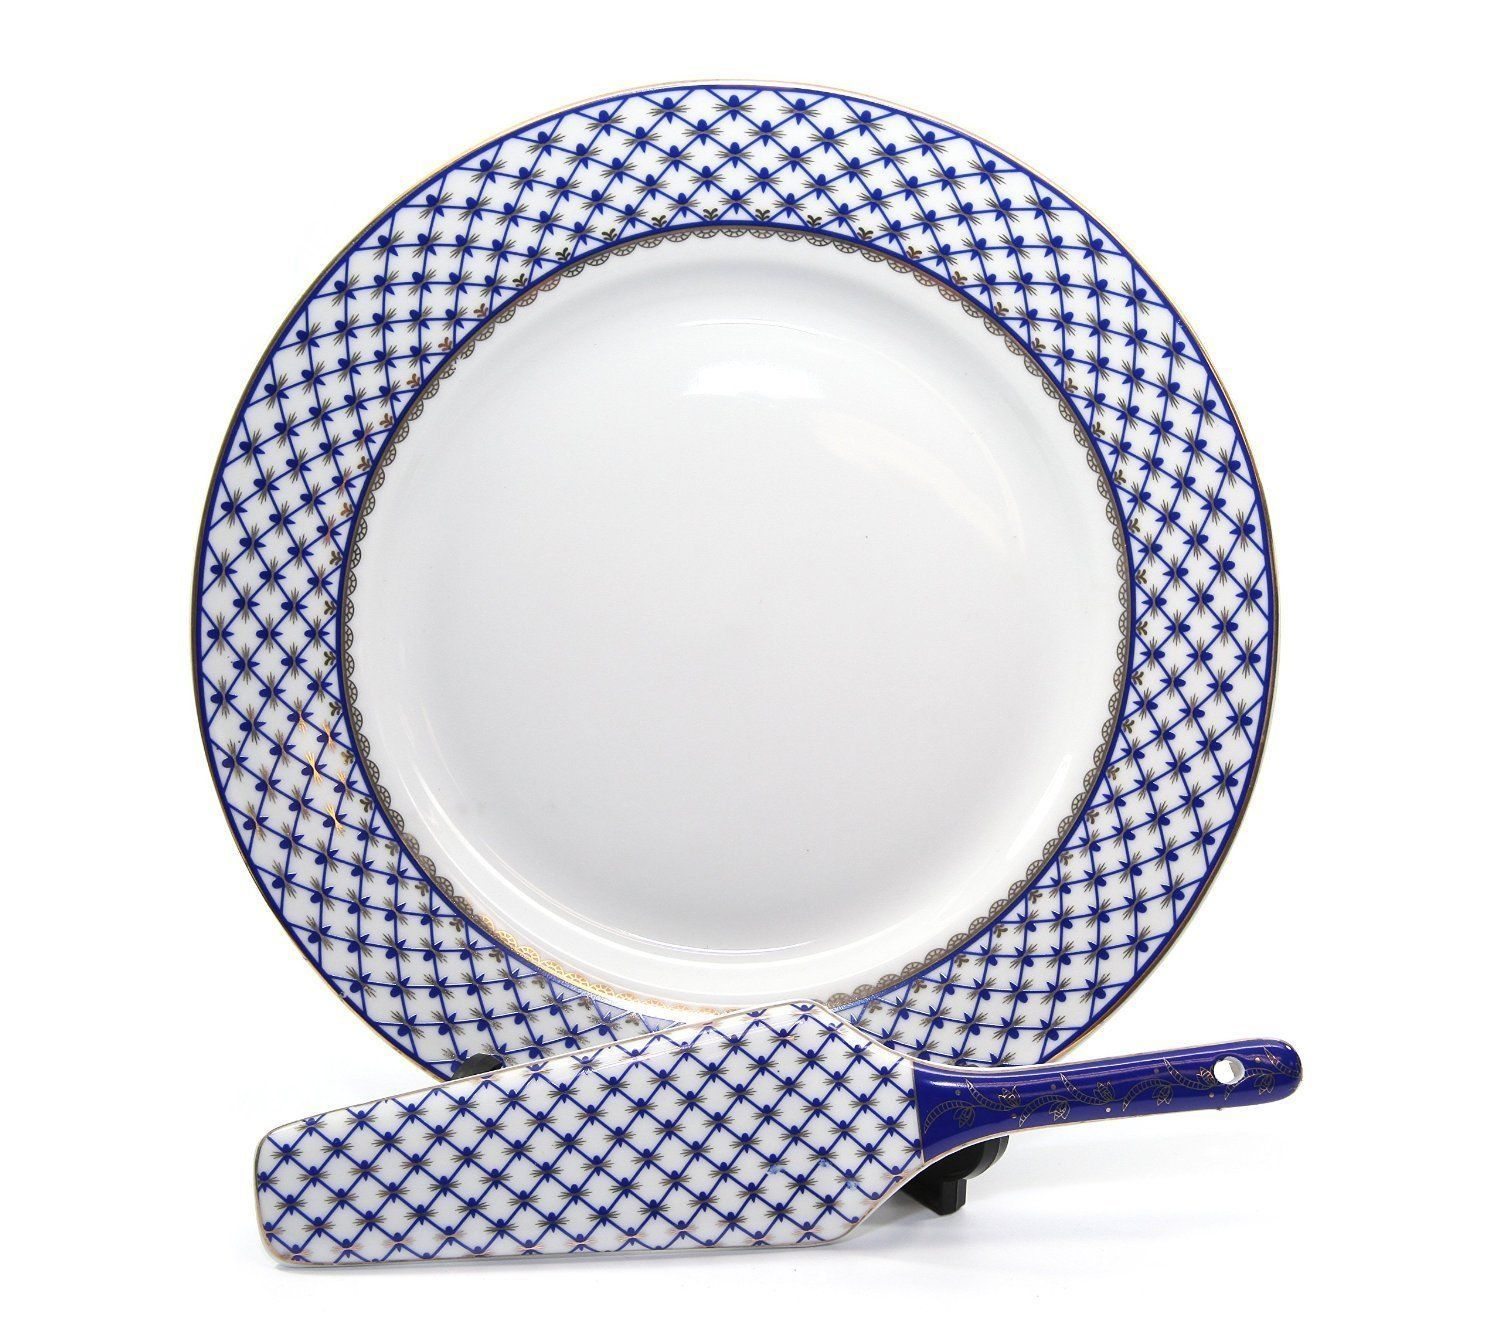 Cobalt Blue Net 2-pc Cake Set, Saint Petersburg